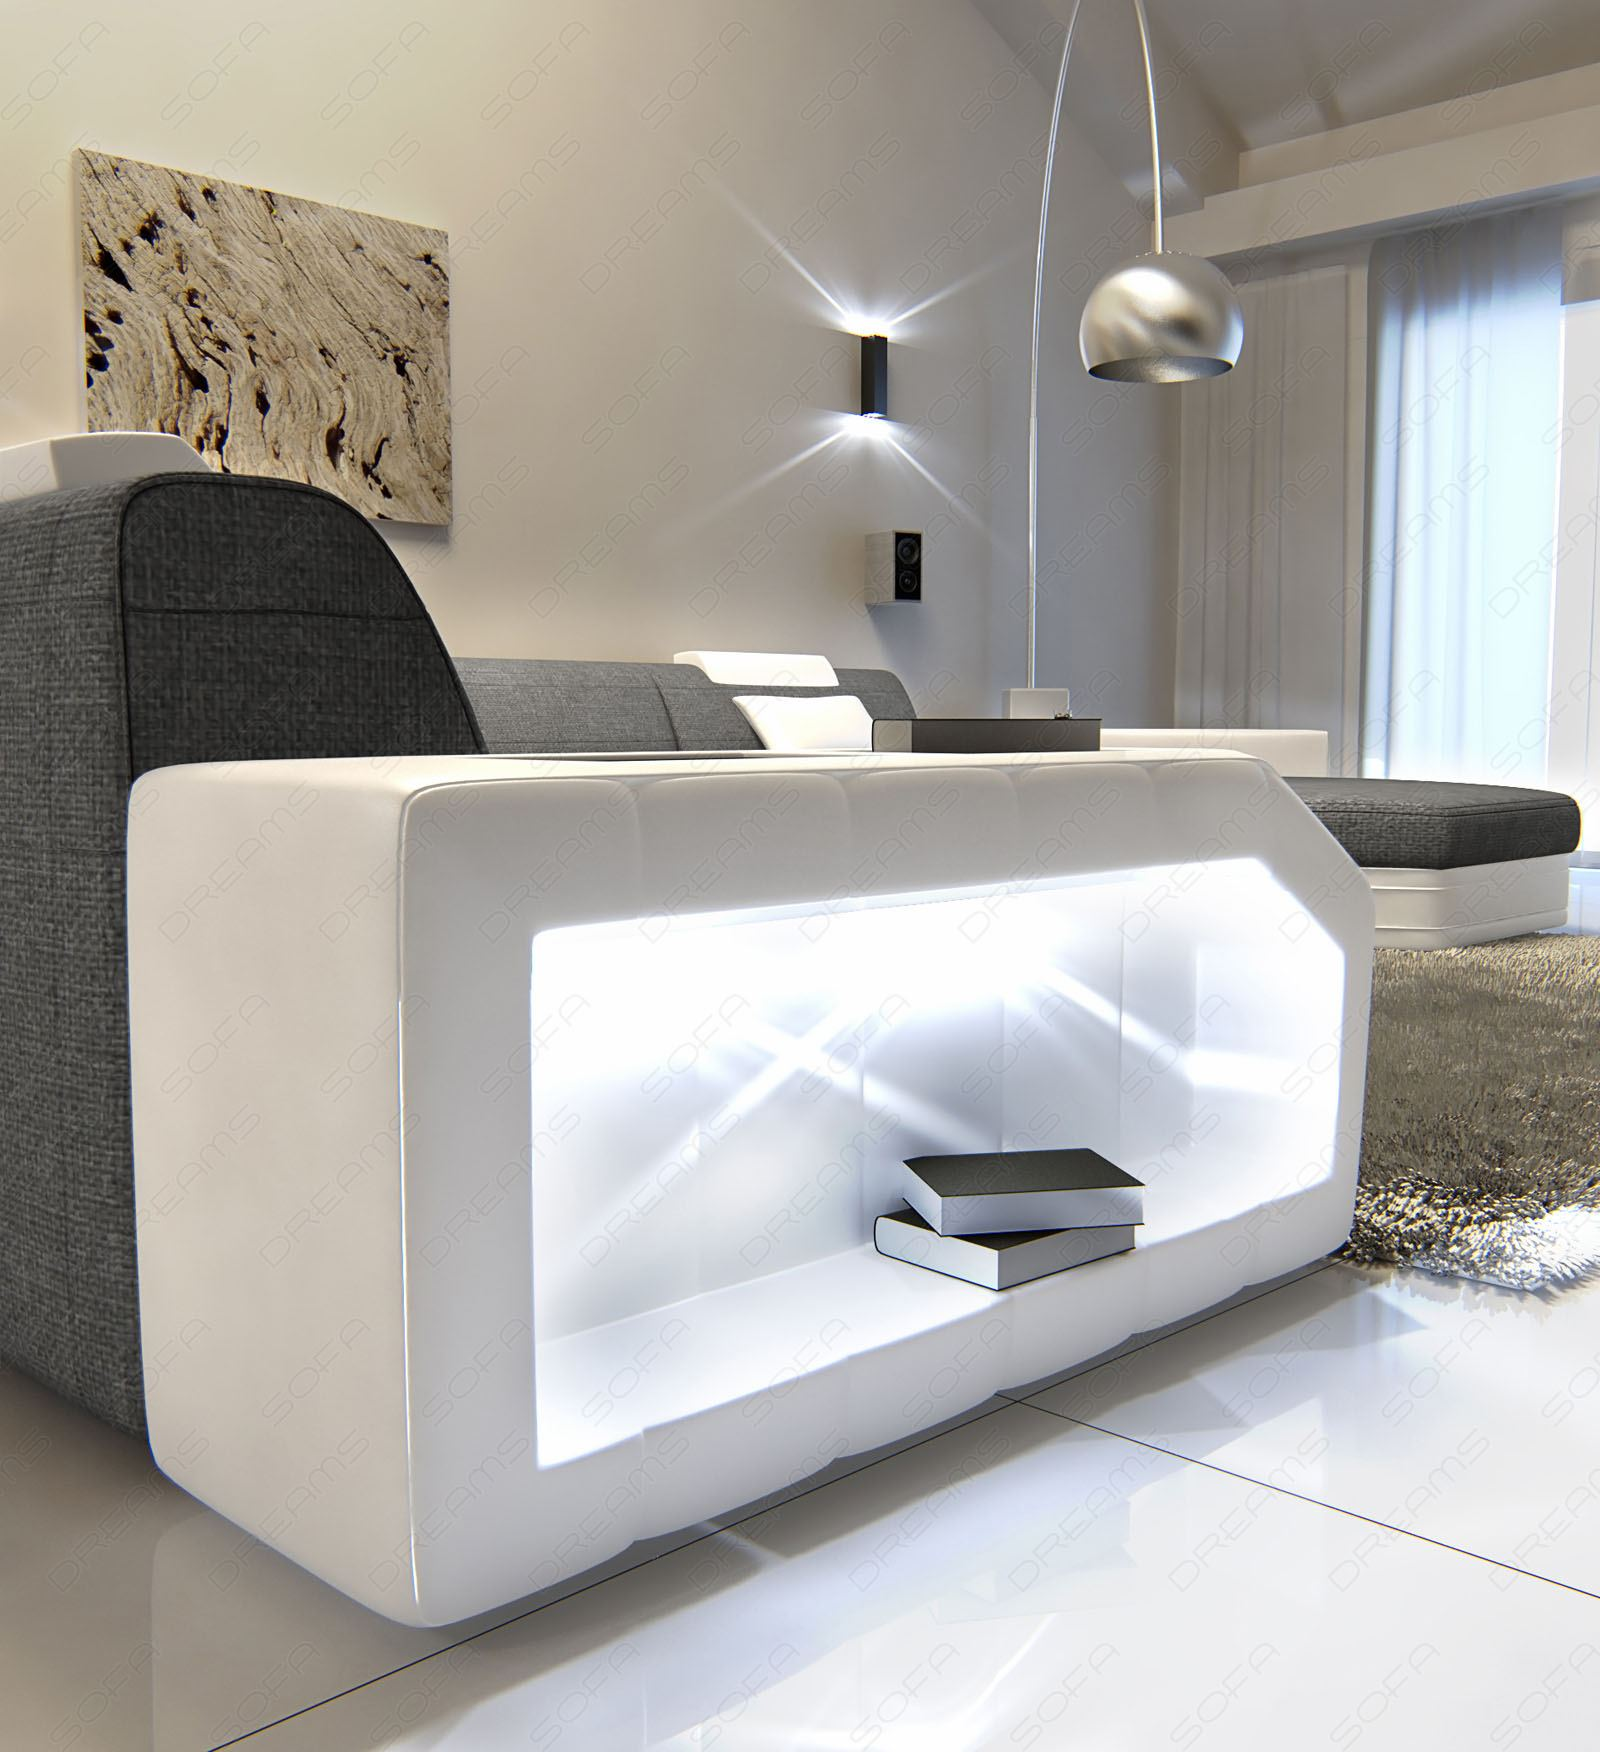 Fabric Interior Design Upholstered Couch Sofa Prato Xxl Led Textured White Grey Ebay